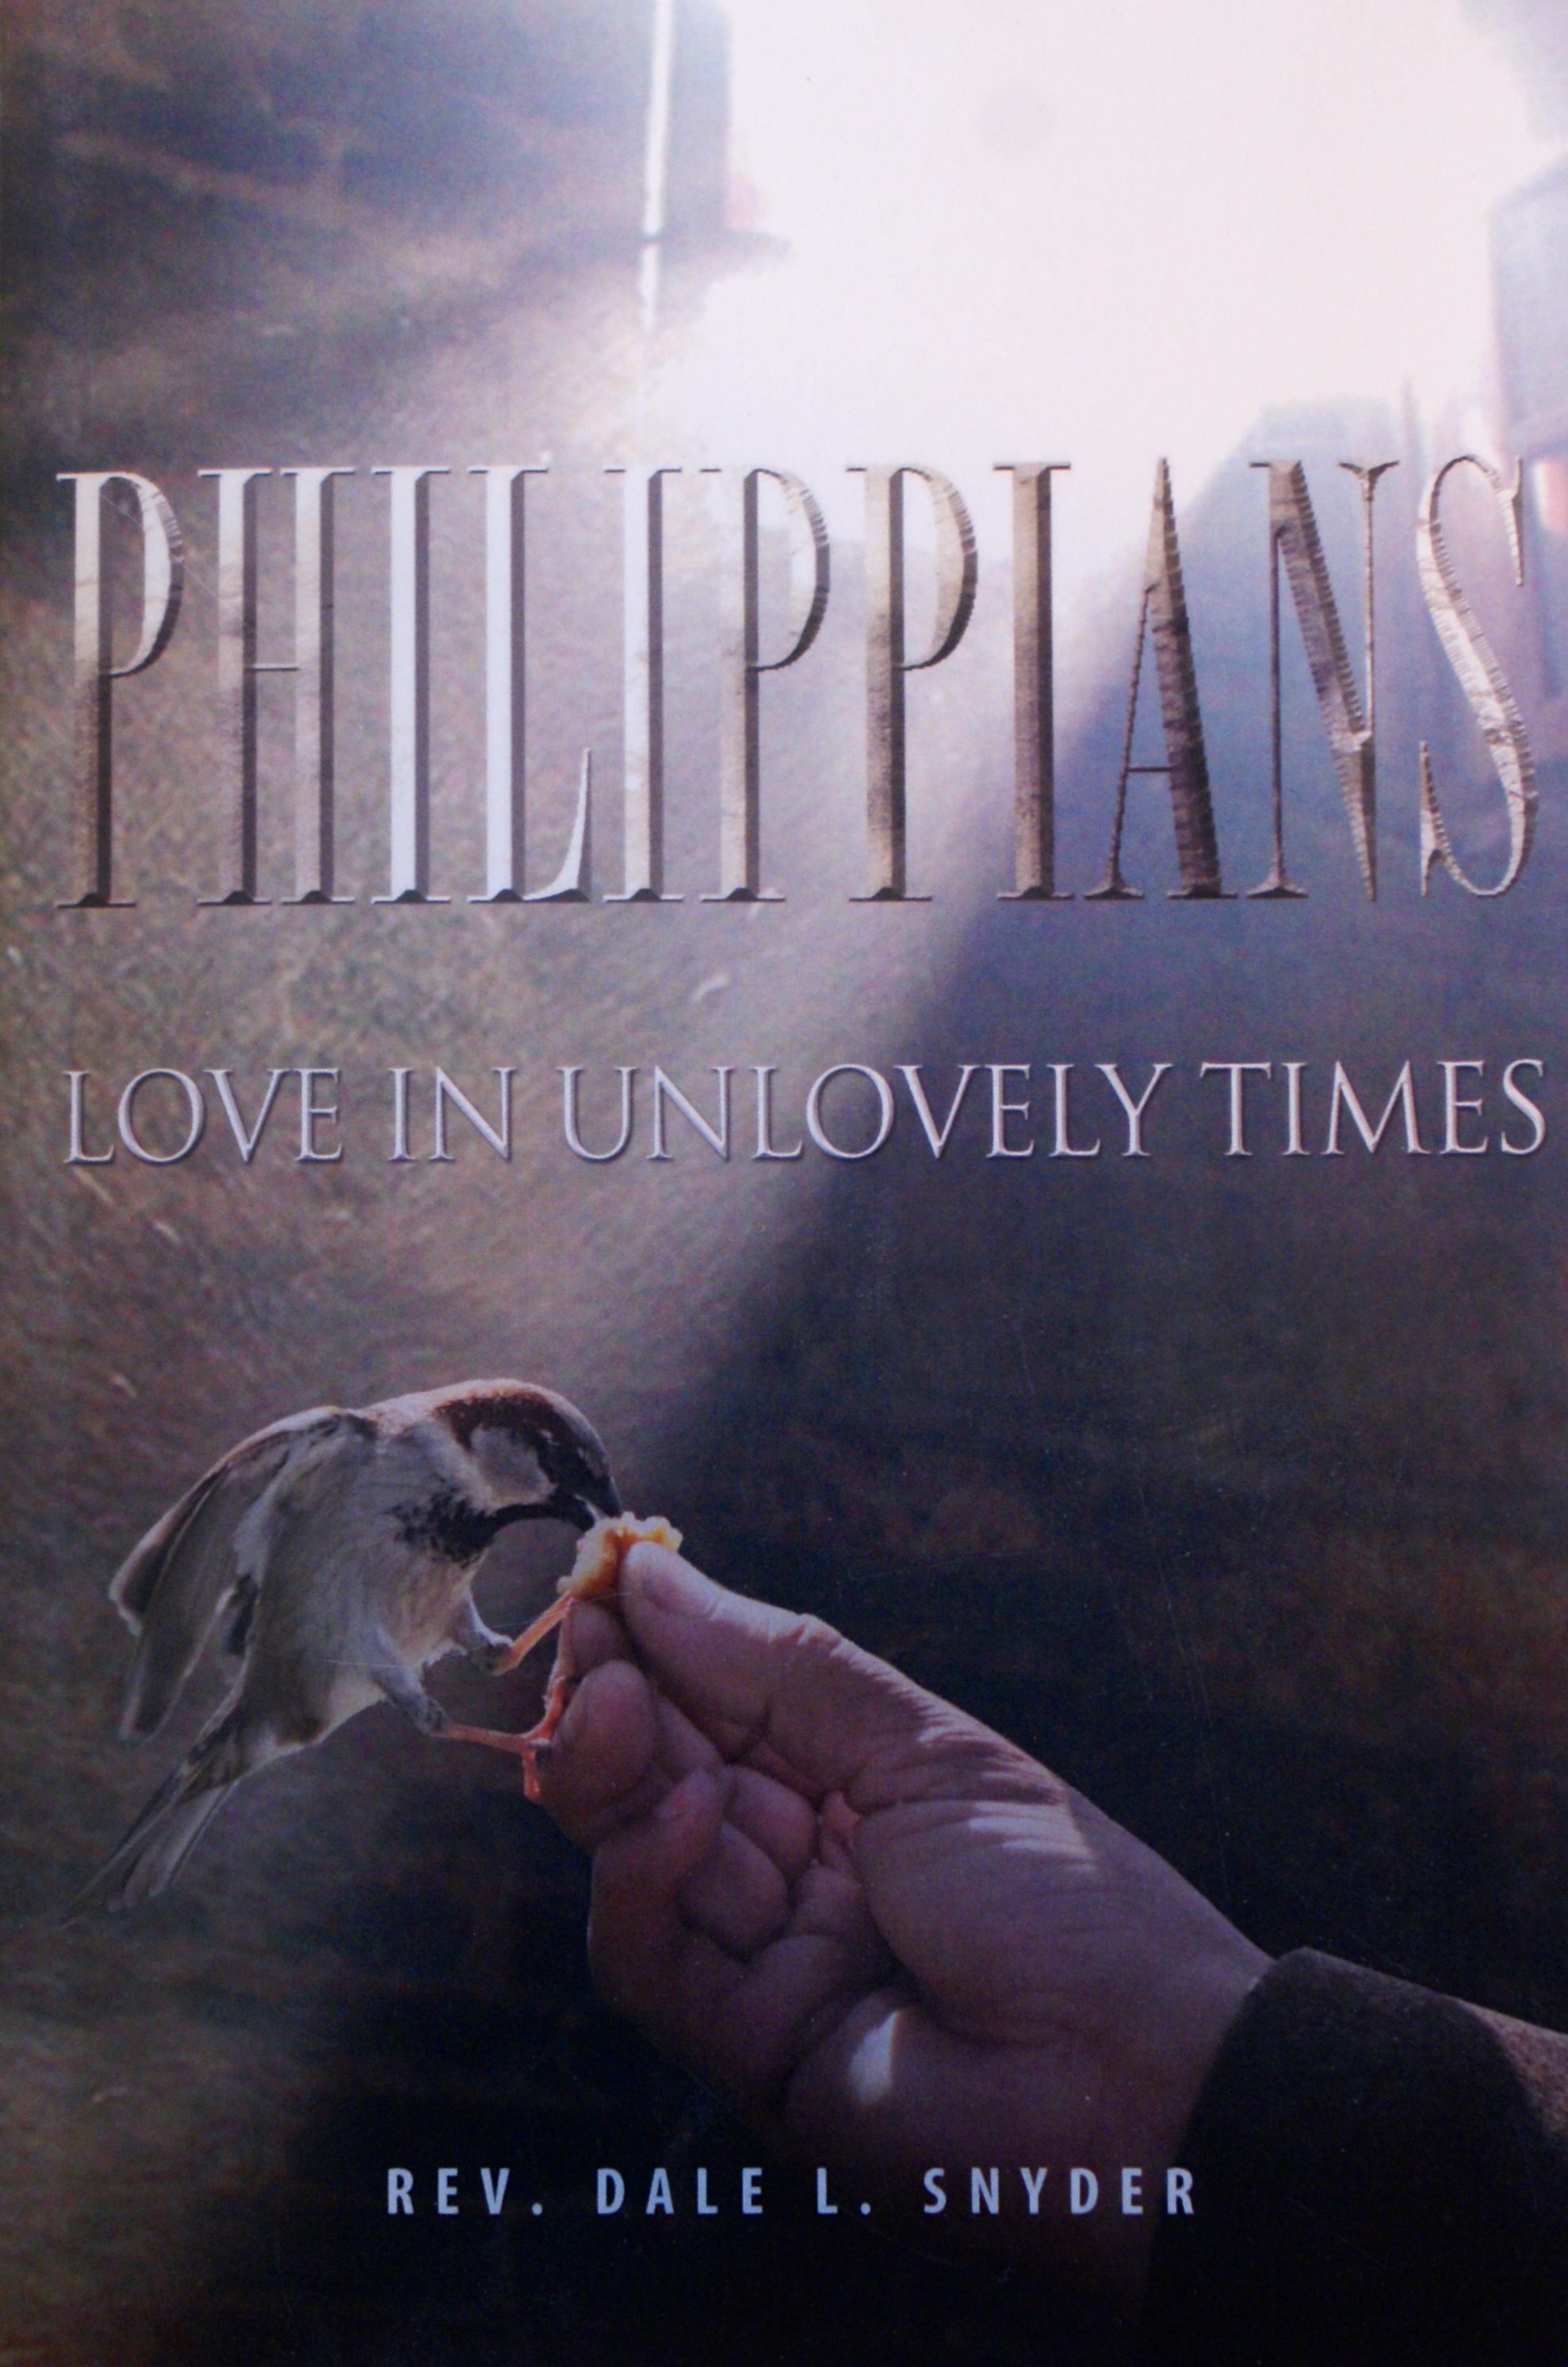 Philippians Love in Unlovely Times